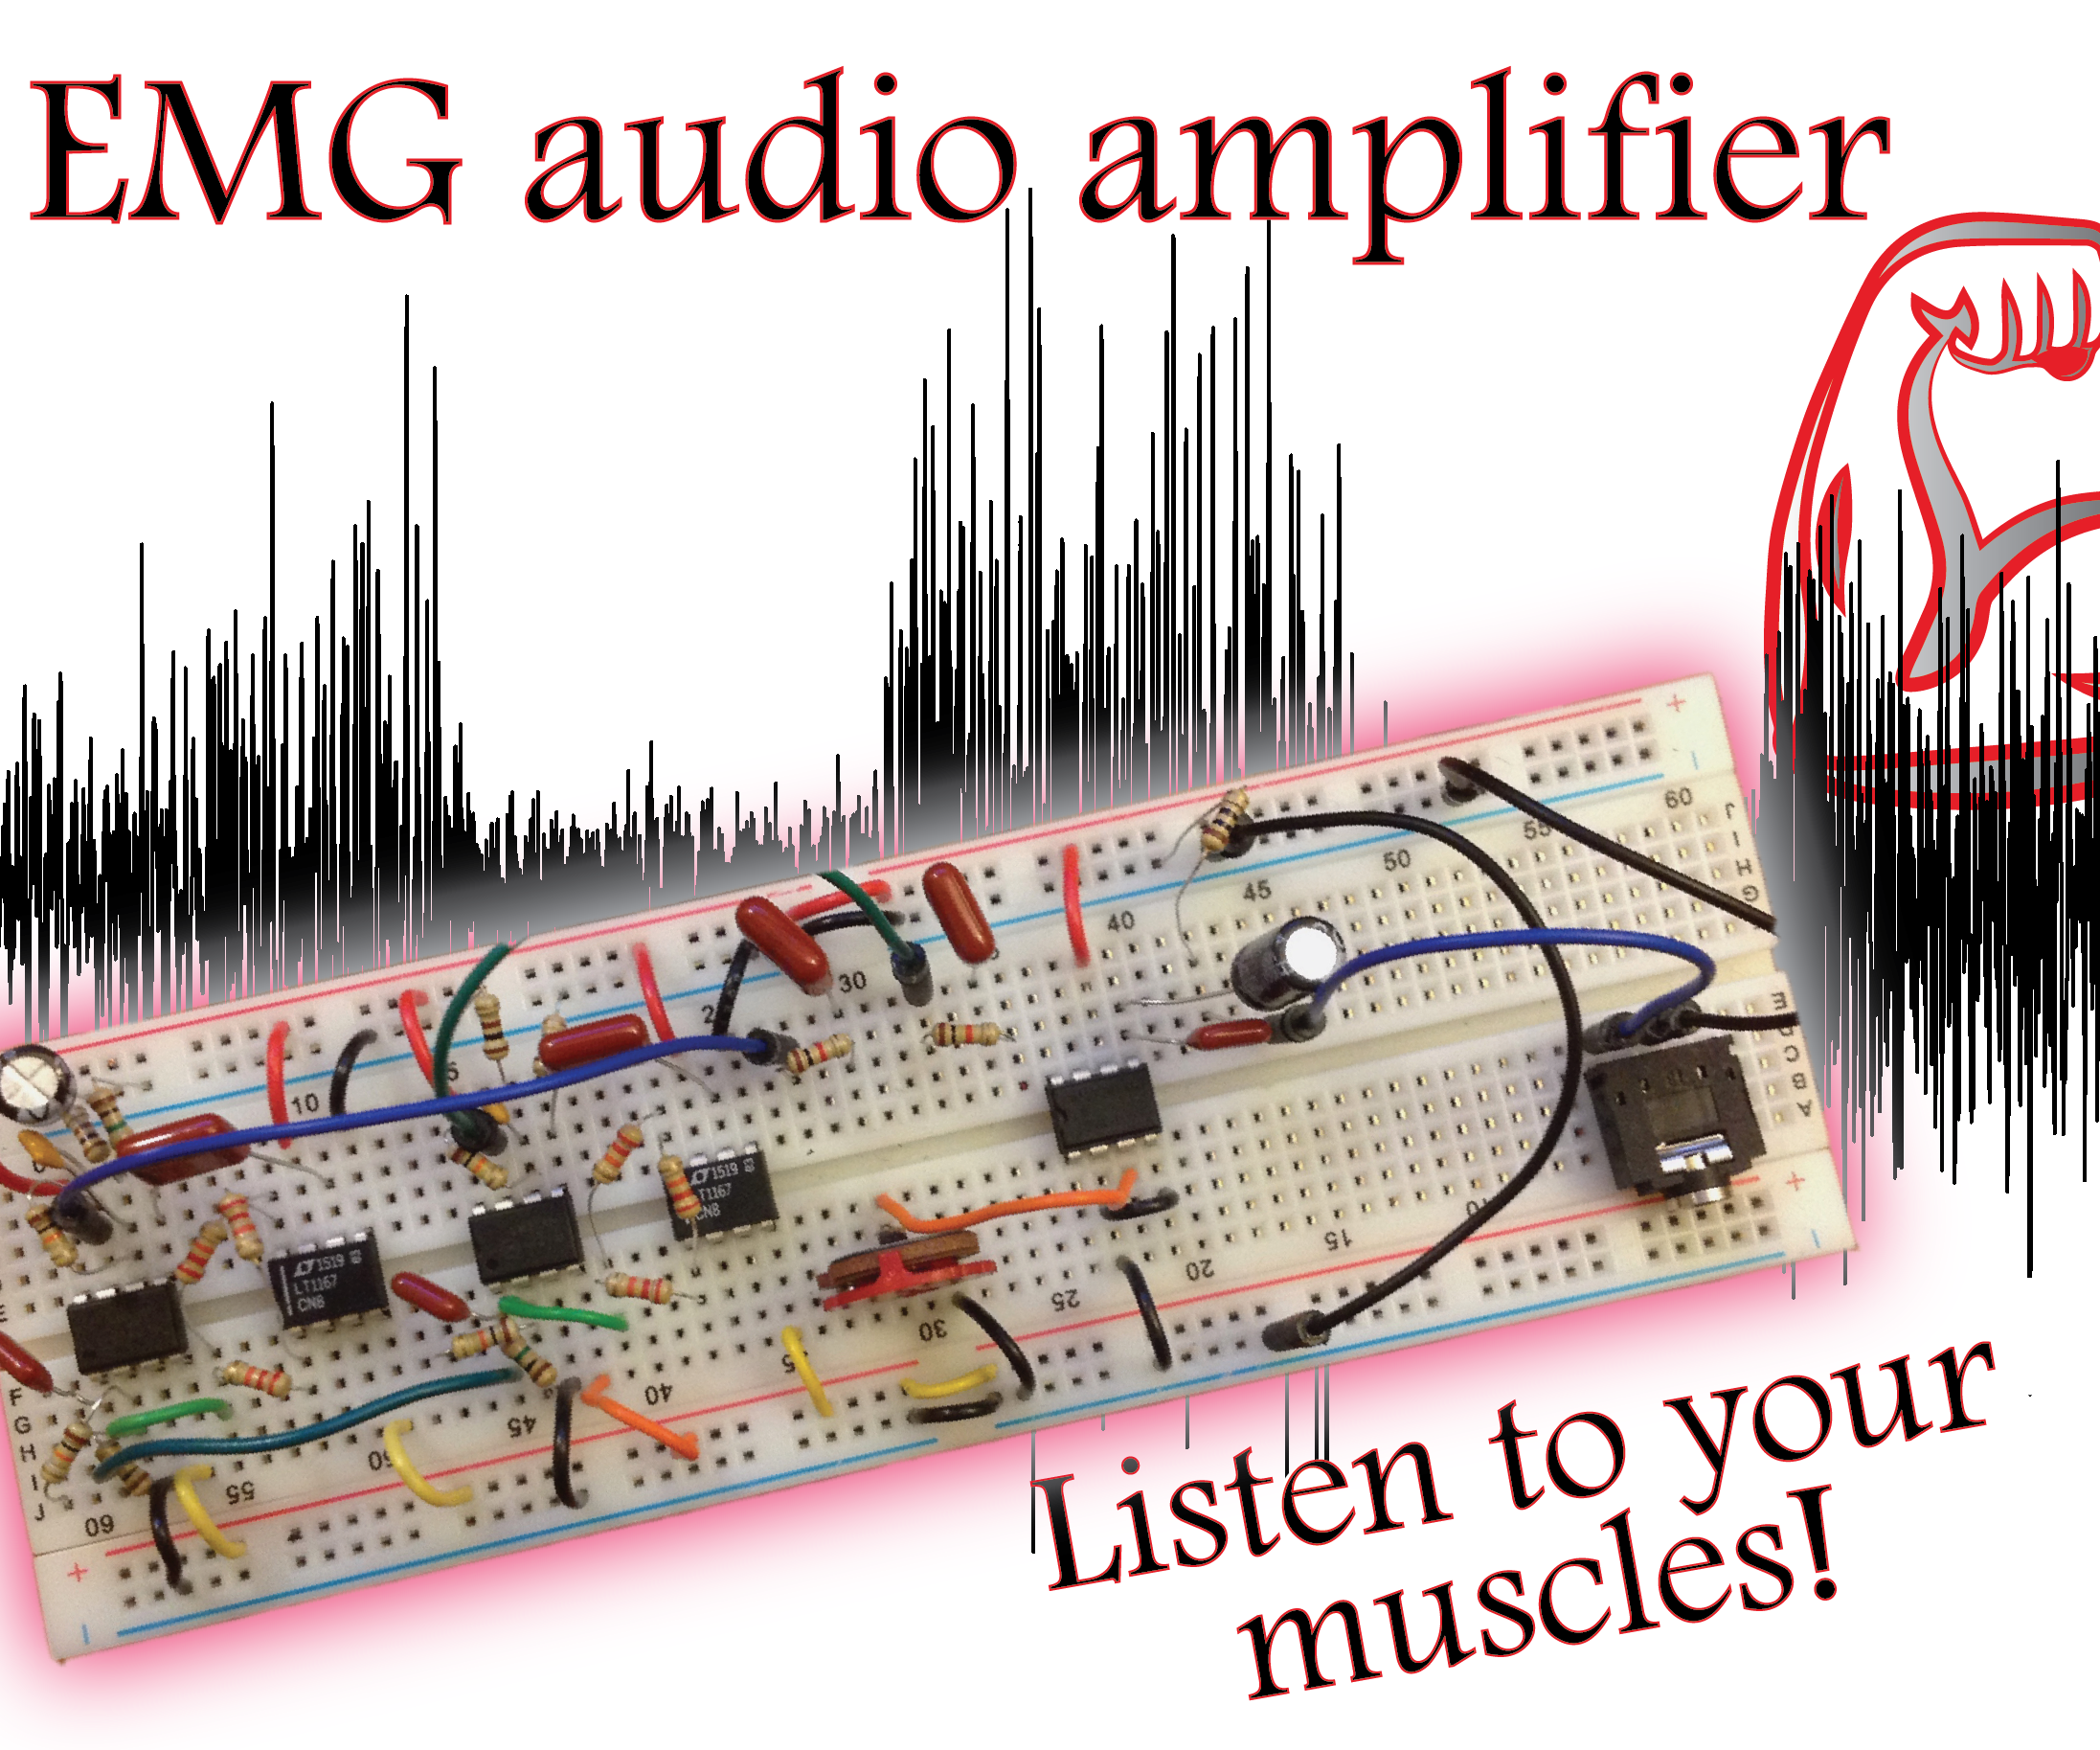 Build an EMG Audio Amplifier! (Electromyography): 8 Steps (with